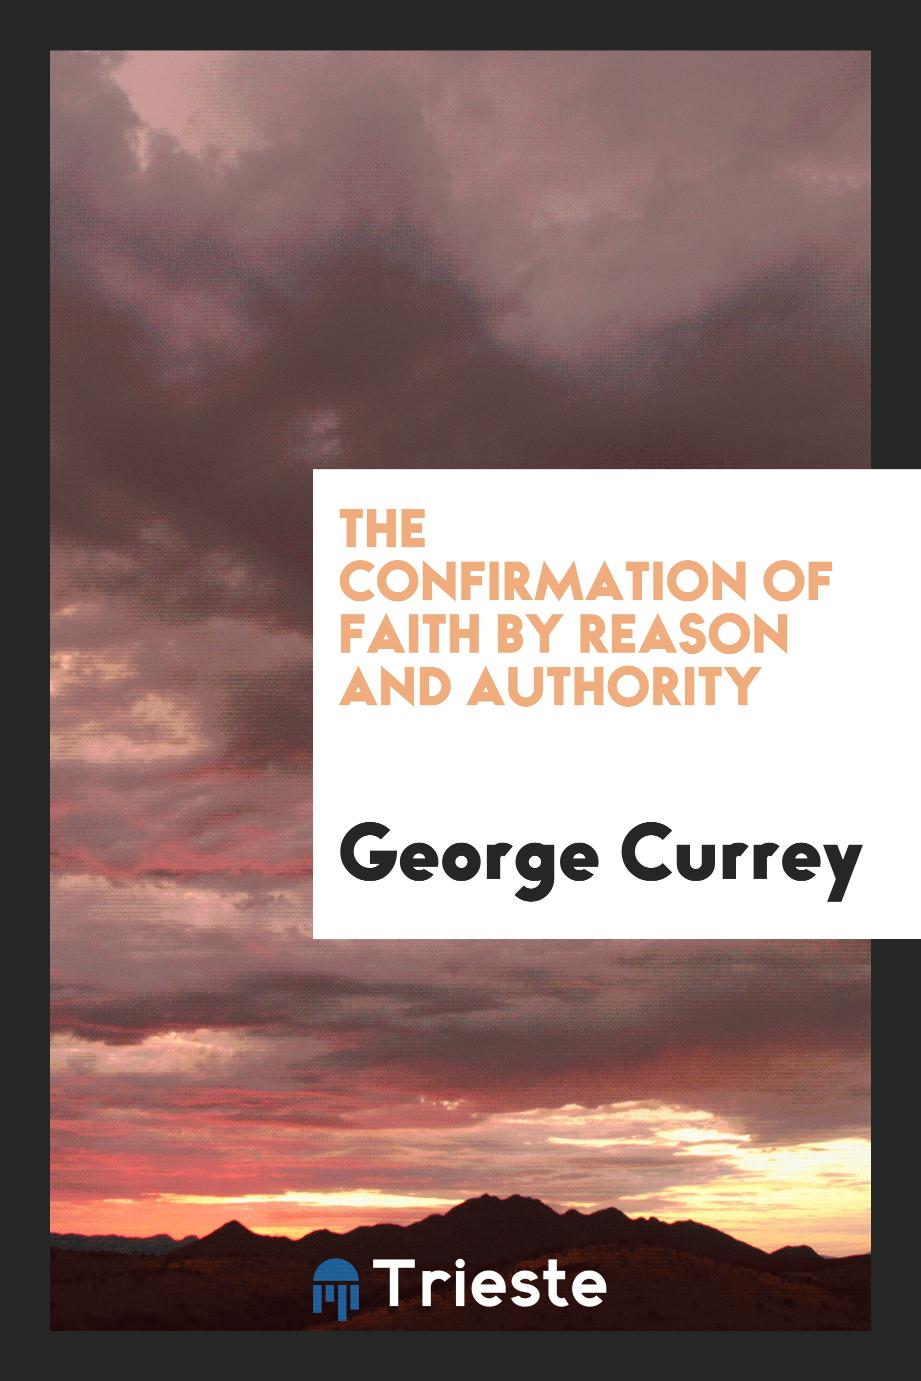 The confirmation of faith by reason and authority